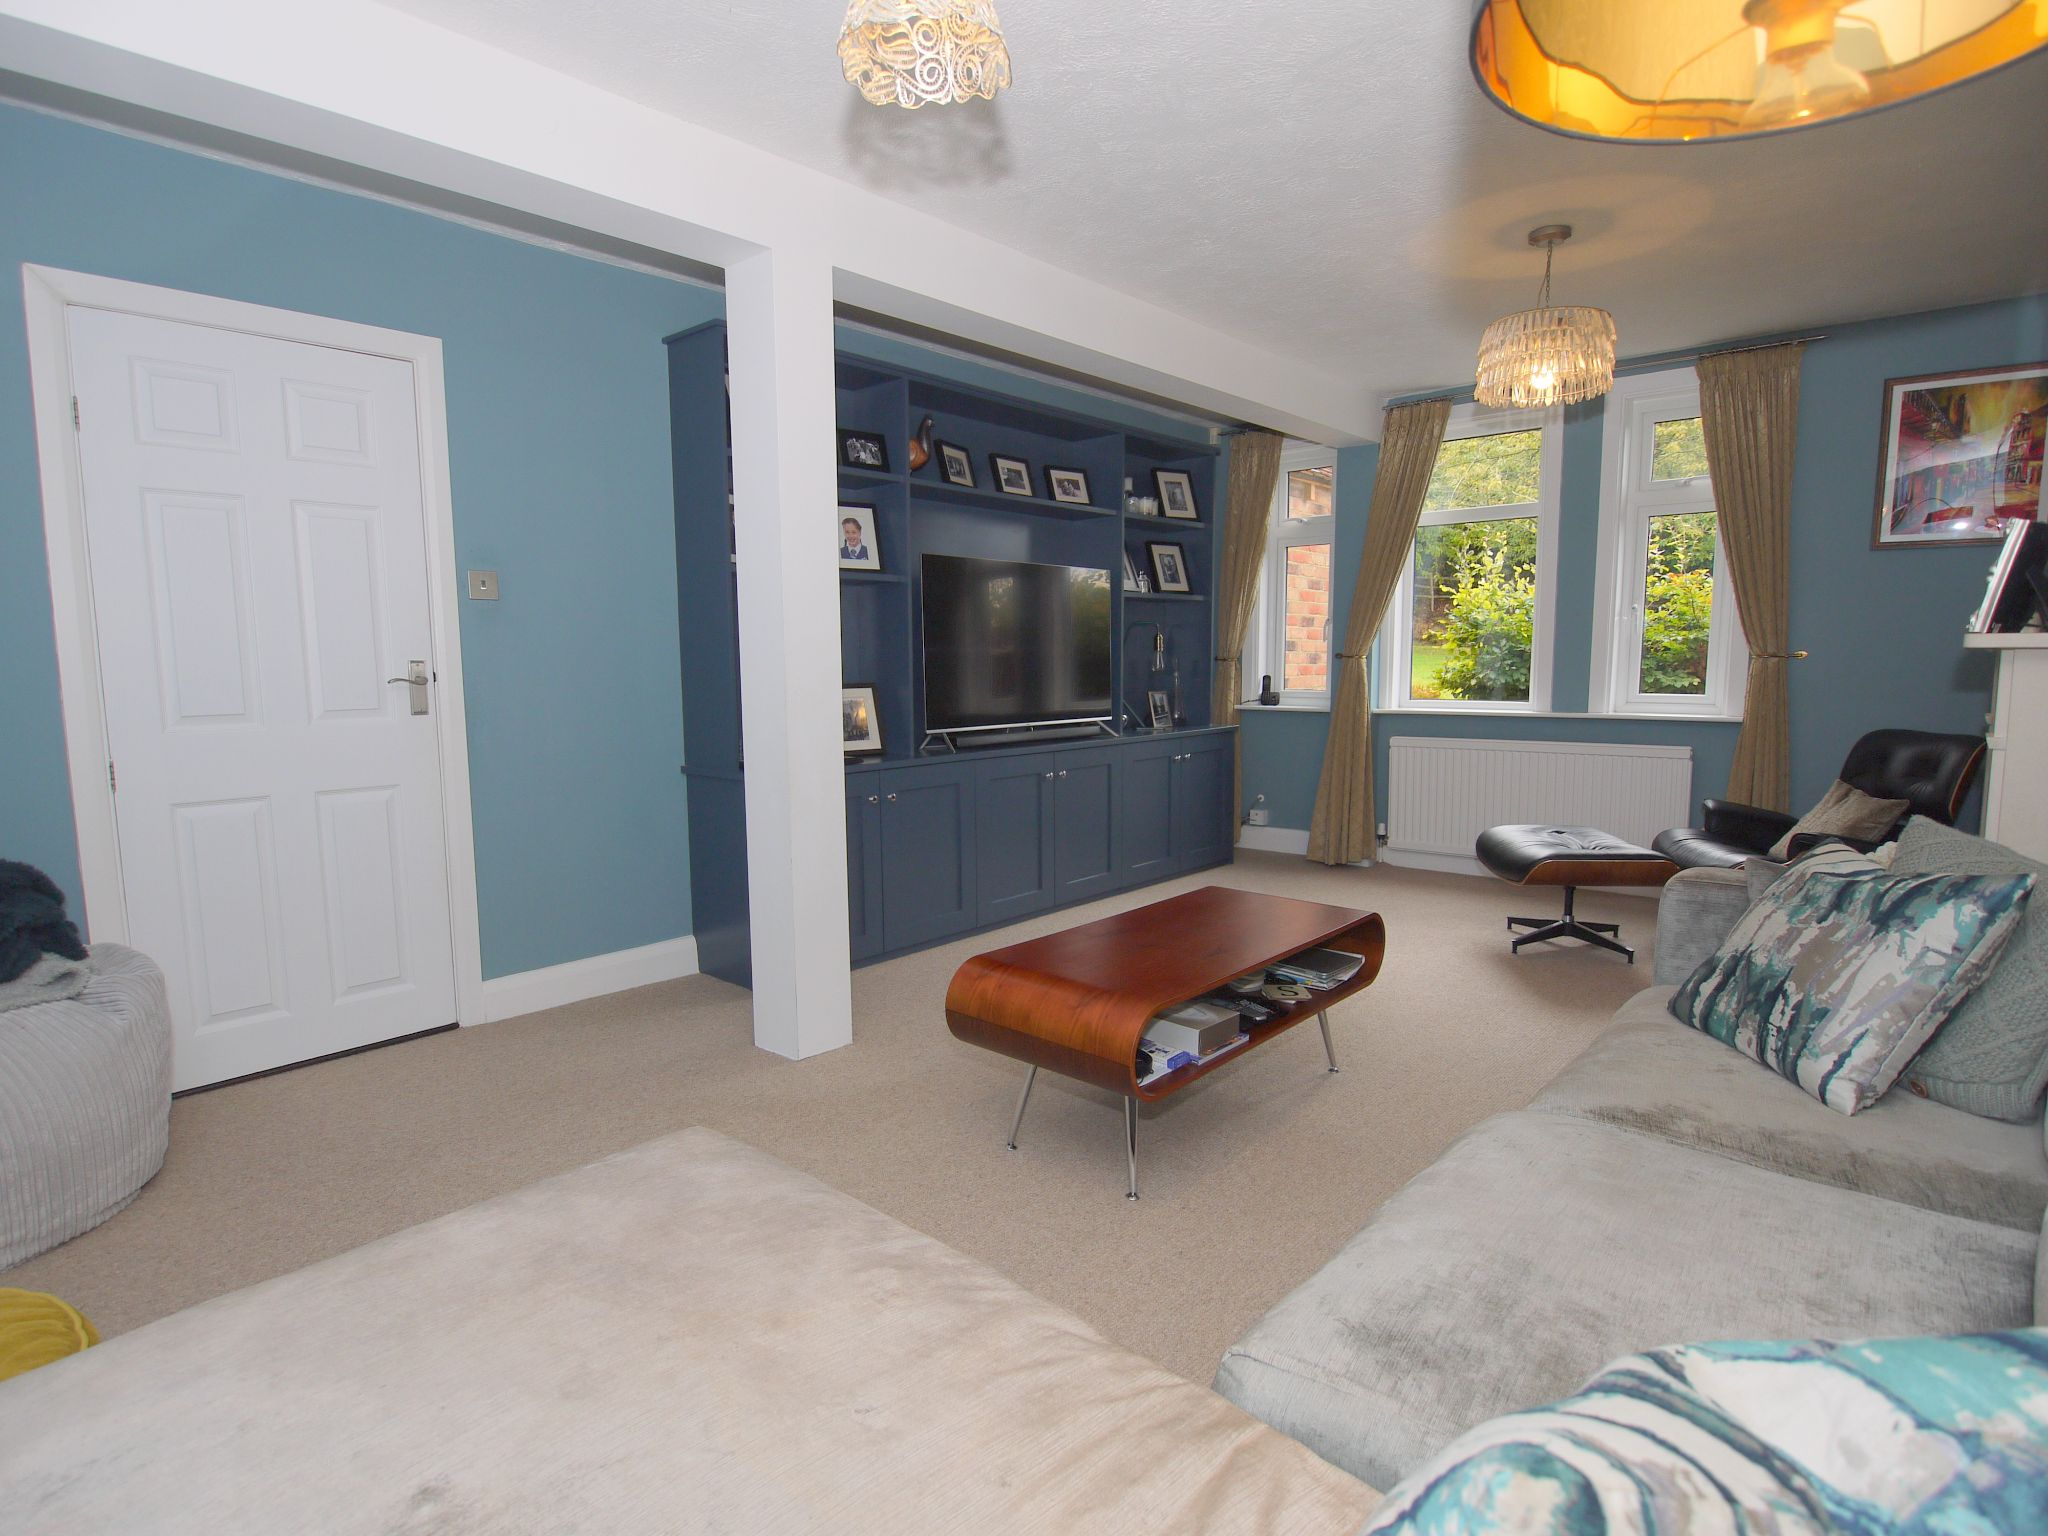 3 bedroom semi-detached house Sold in Sevenoaks - Photograph 5